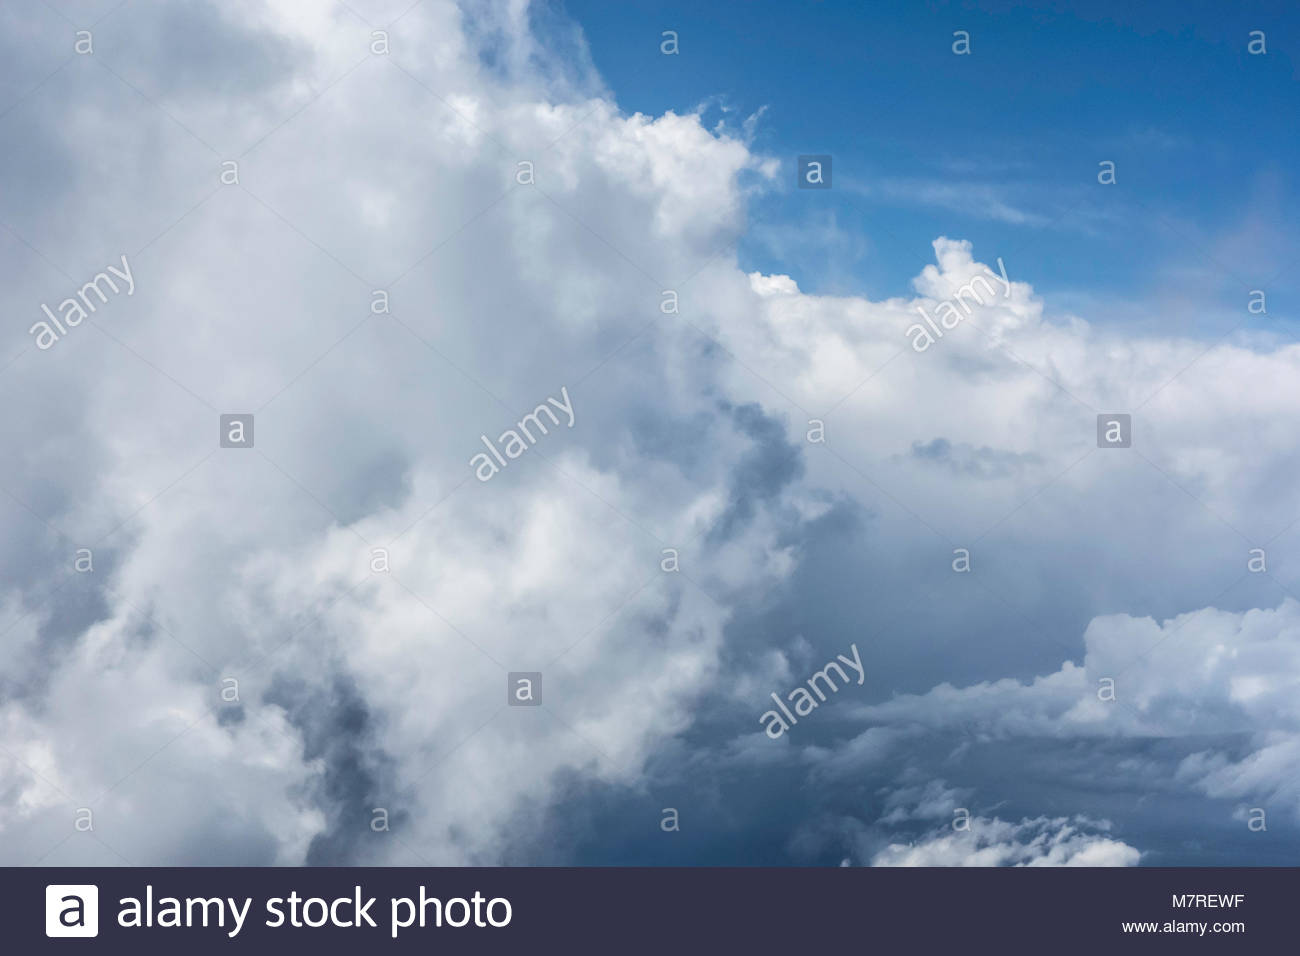 Warm moist air rising over mountainous Hawaiian islands create cumulonimbus clouds a hydrologic cycle in the state - Stock Image